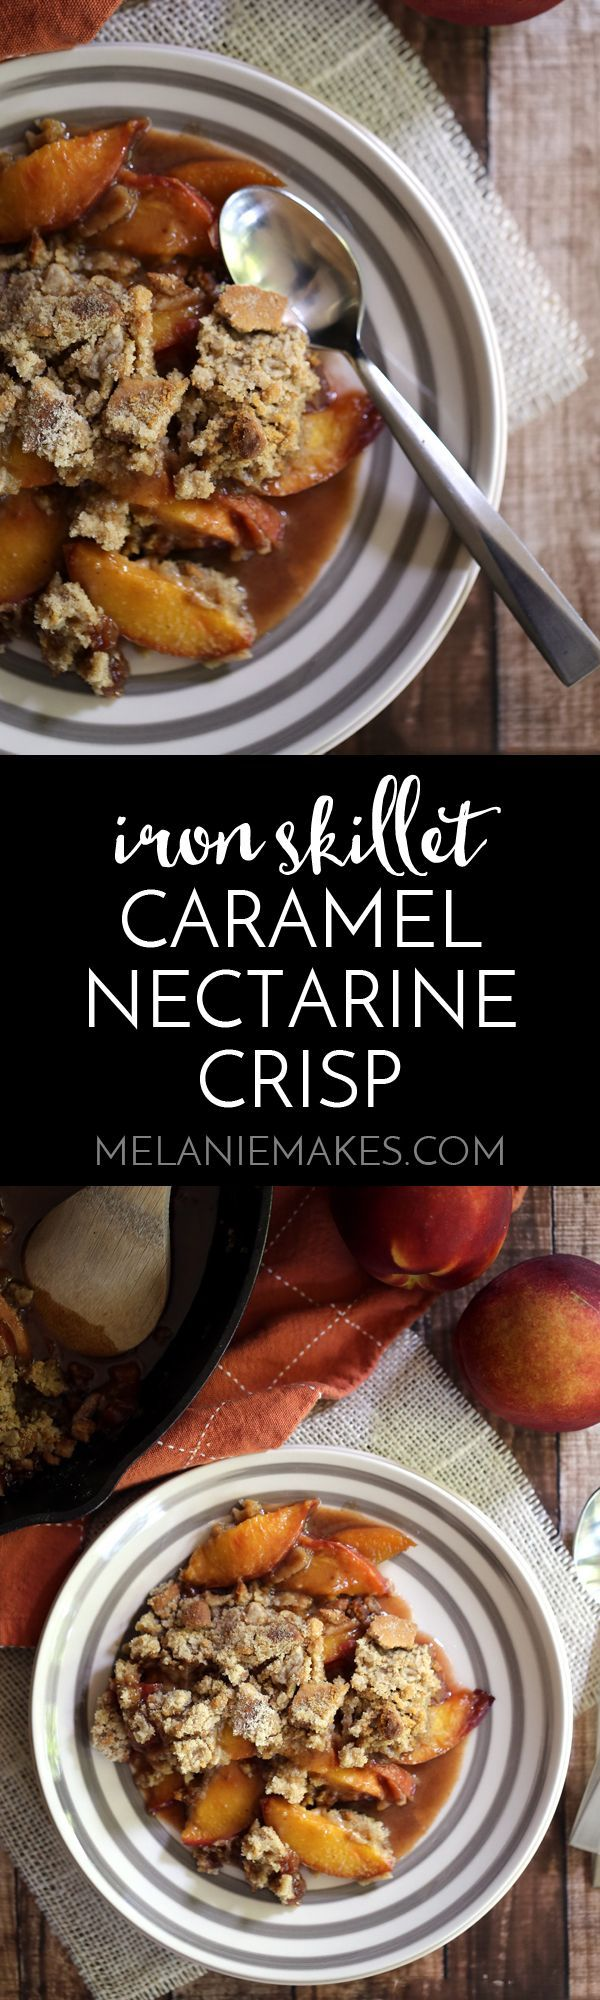 This Iron Skillet Caramel Nectarine Crisp is anything but ordinary, but so incredibly easy! Slices of fresh nectarines are tossed with allspice and caramel before being topped with a gingersnap cookie crumble. Topped with a scoop of ice cream, it's dessert perfection.